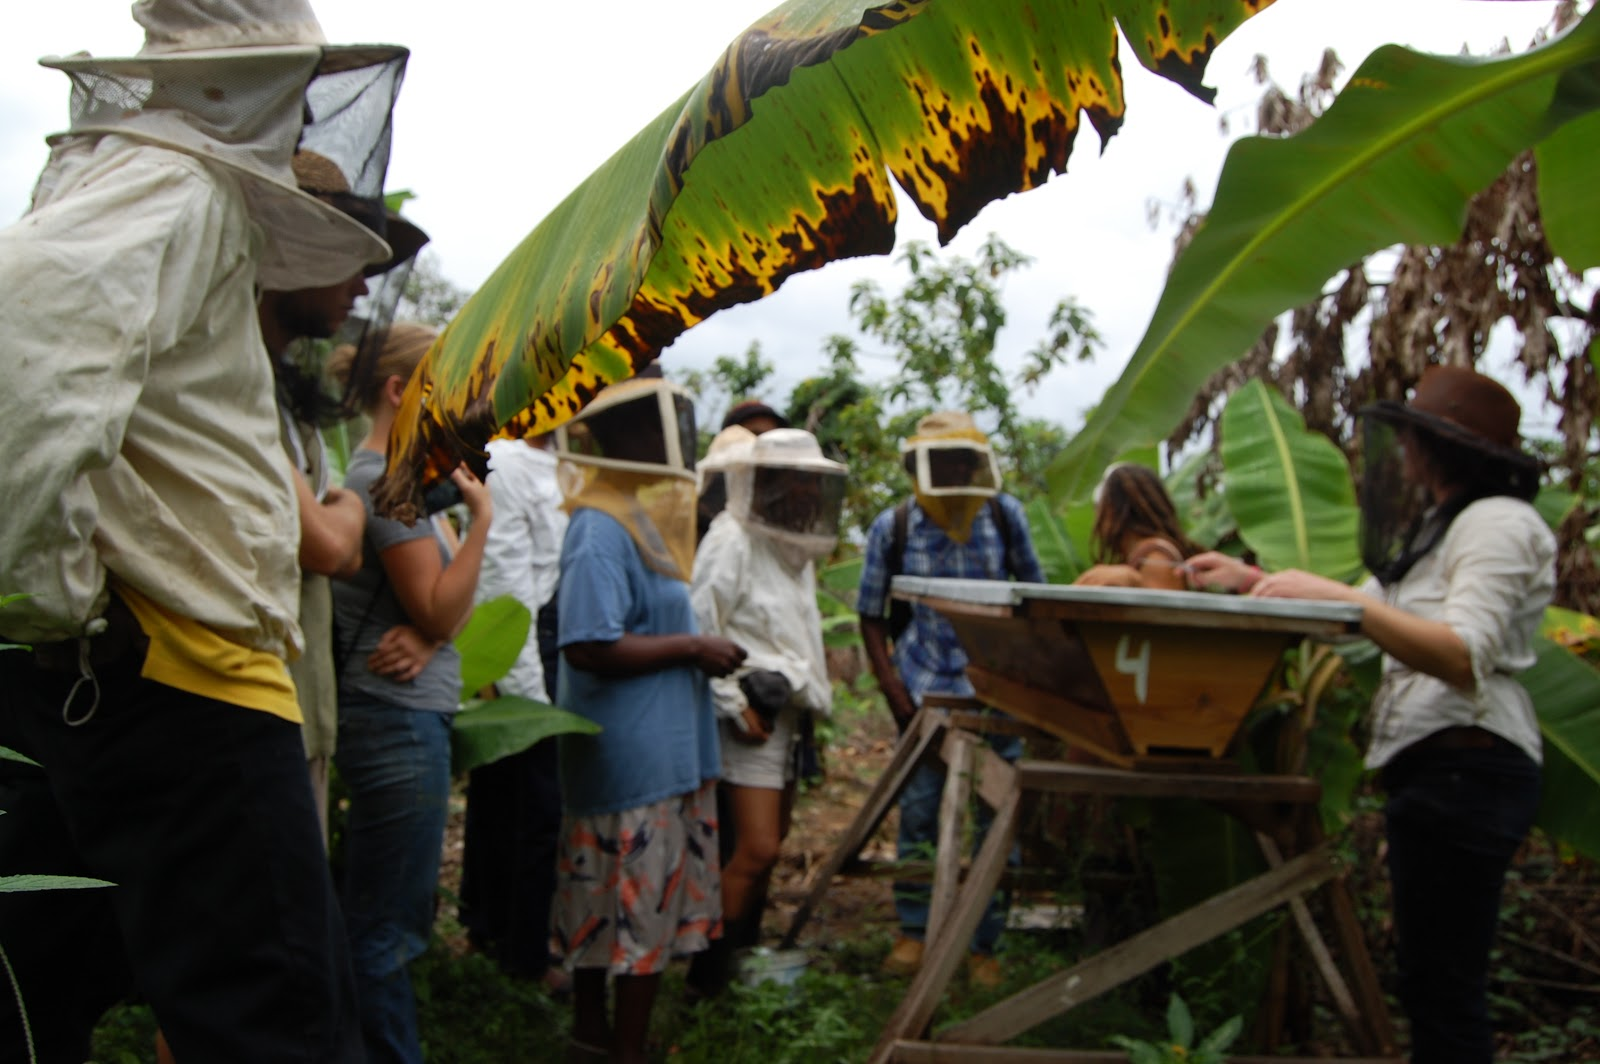 apiculture in jamaica Many beekeepers in jamaica, including our family, are open to exploring natural and sustainable methods of beekeeping when we learned about top bar beekeeping, we were so excited we wanted to share information about this method with other beekeepers around the island.